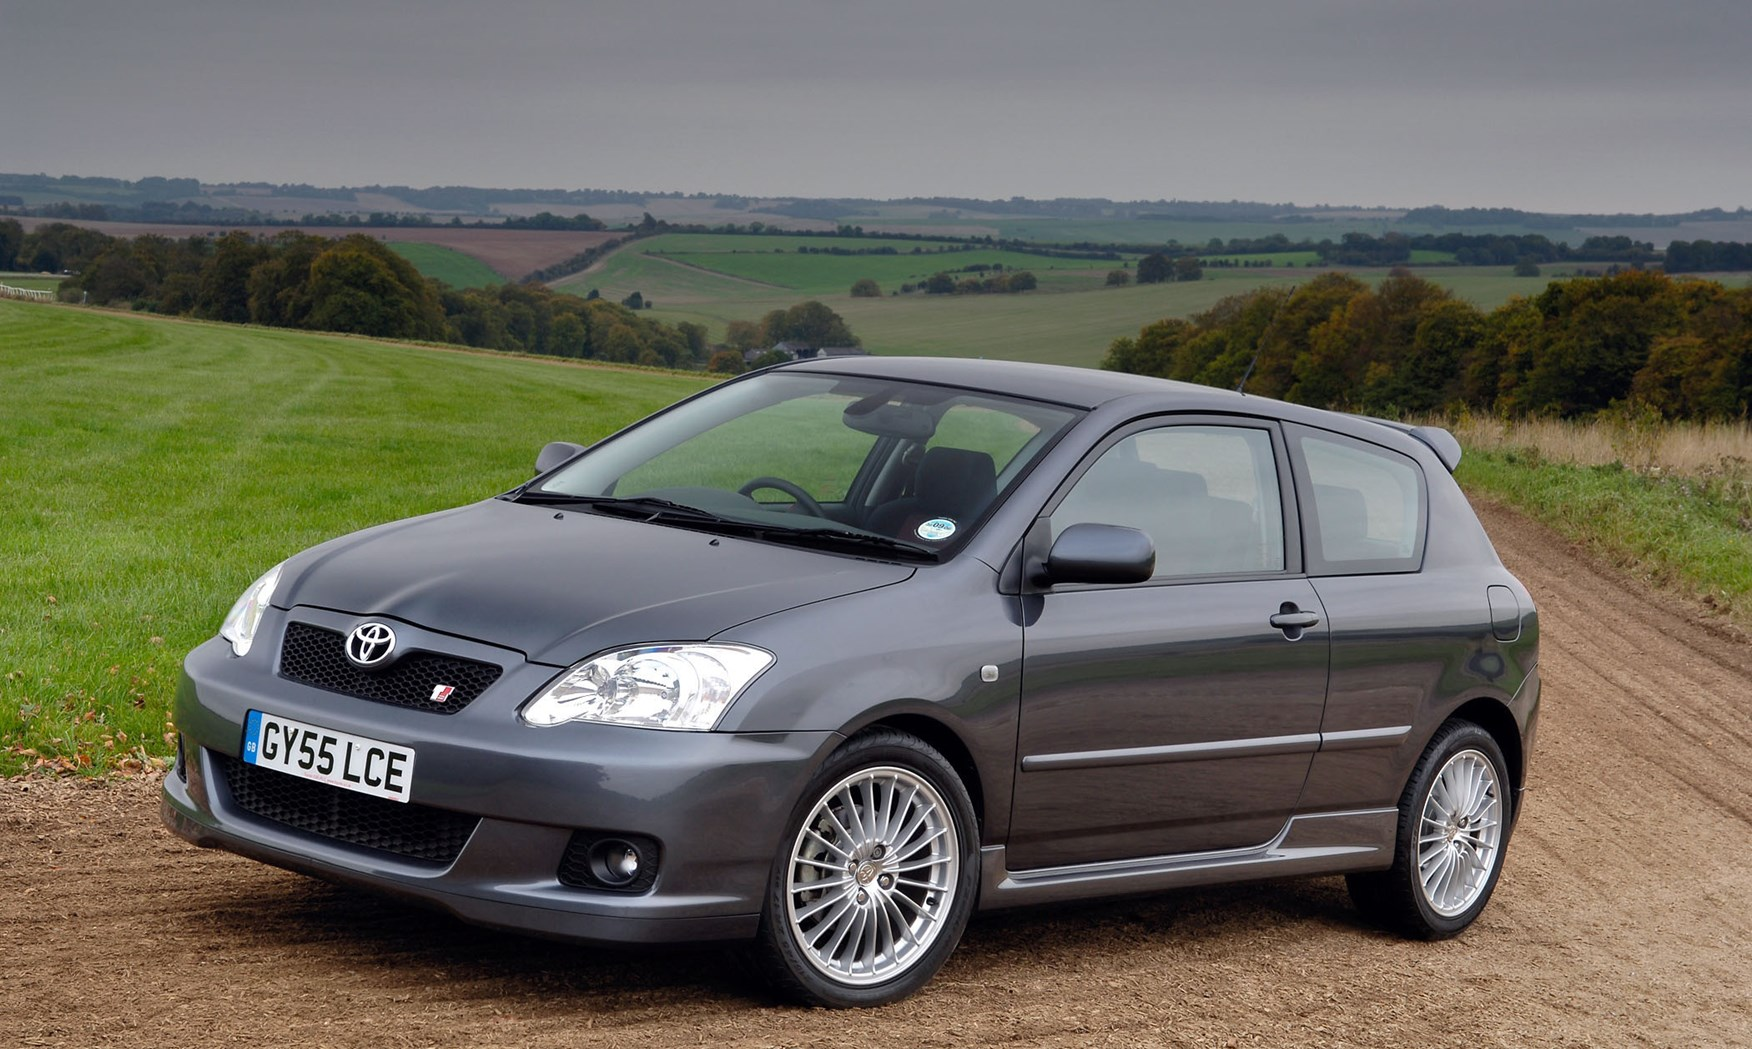 Toyota Corolla Hatchback 2002 2006 Features Equipment And Pimped Runx Accessories Parkers